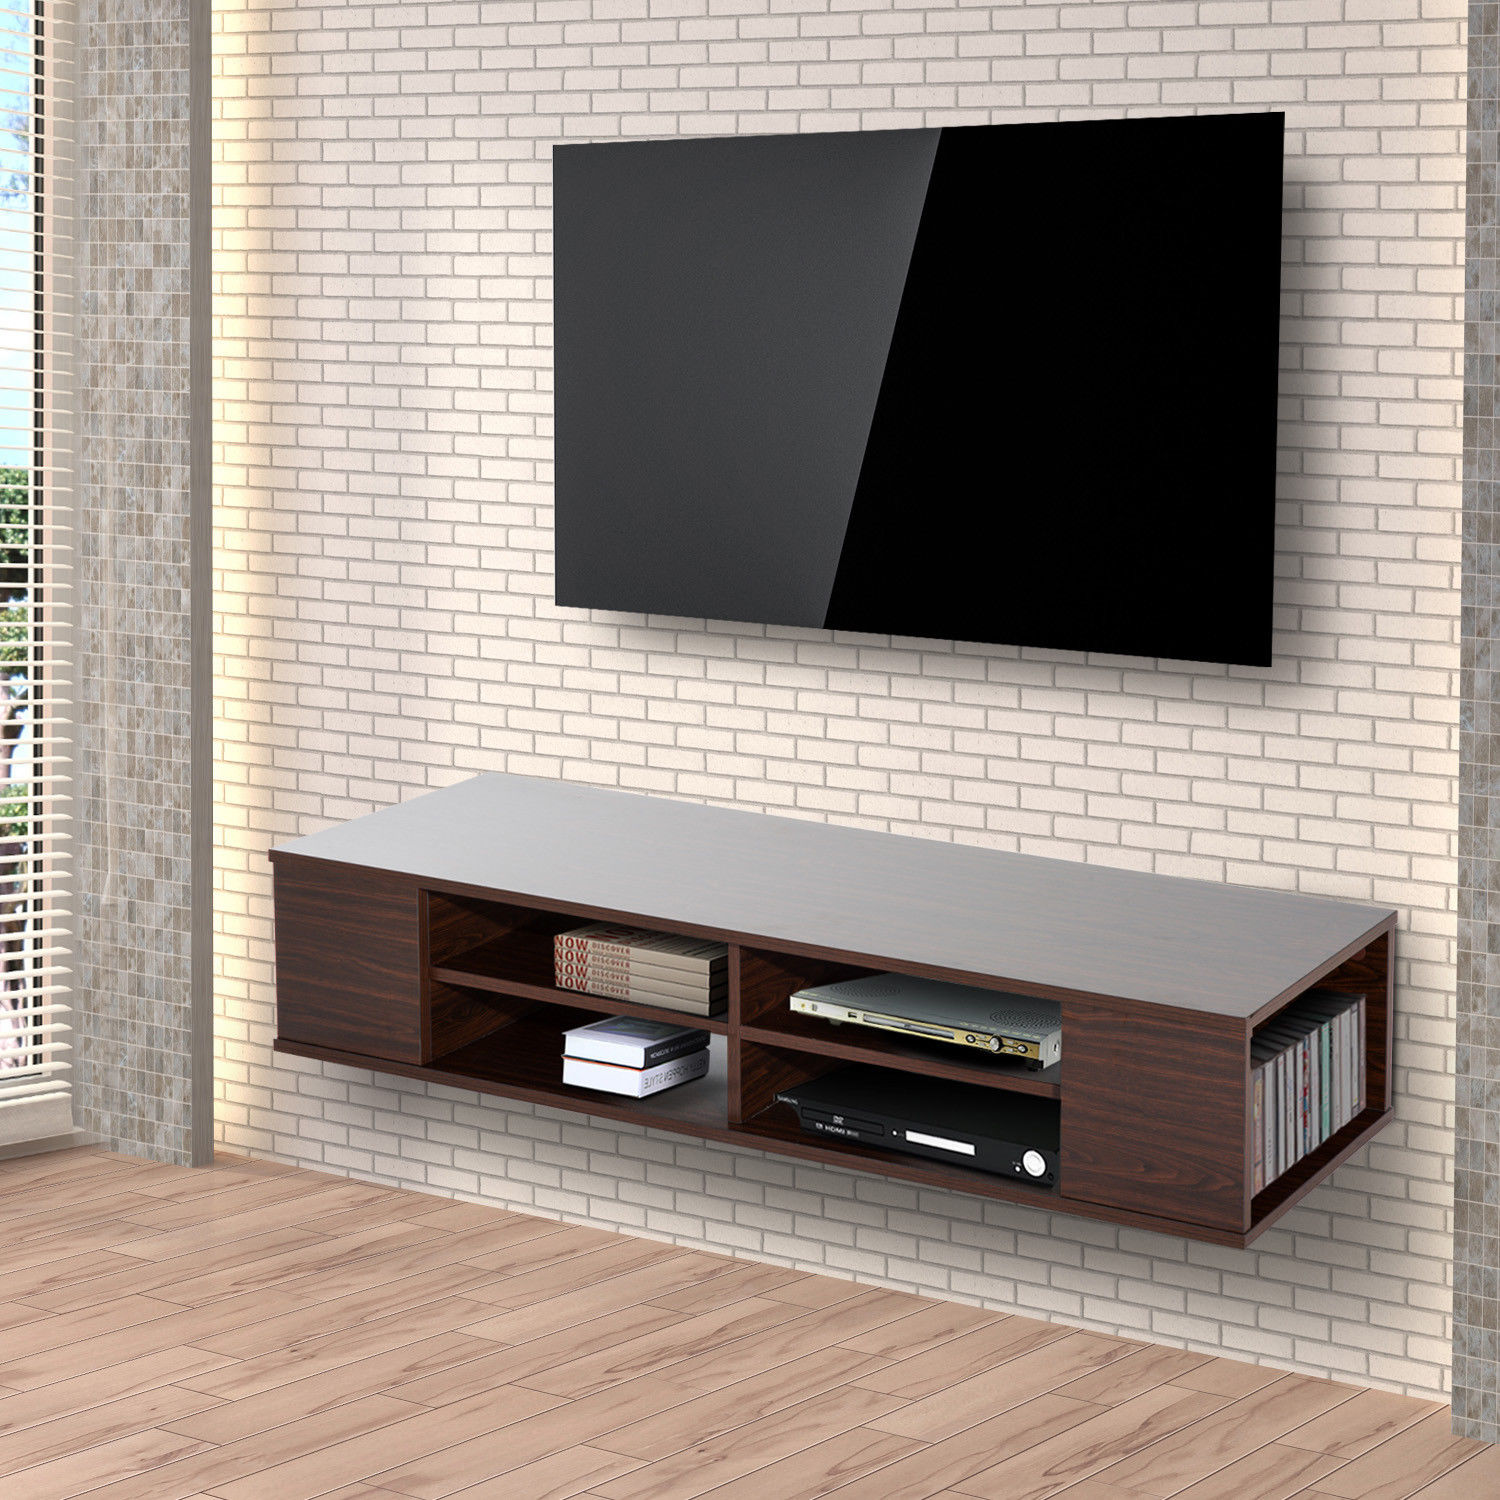 Floating Tv Cabinet Modern 47 Floating Wall Mounted Tv Stand Unit Cabinet